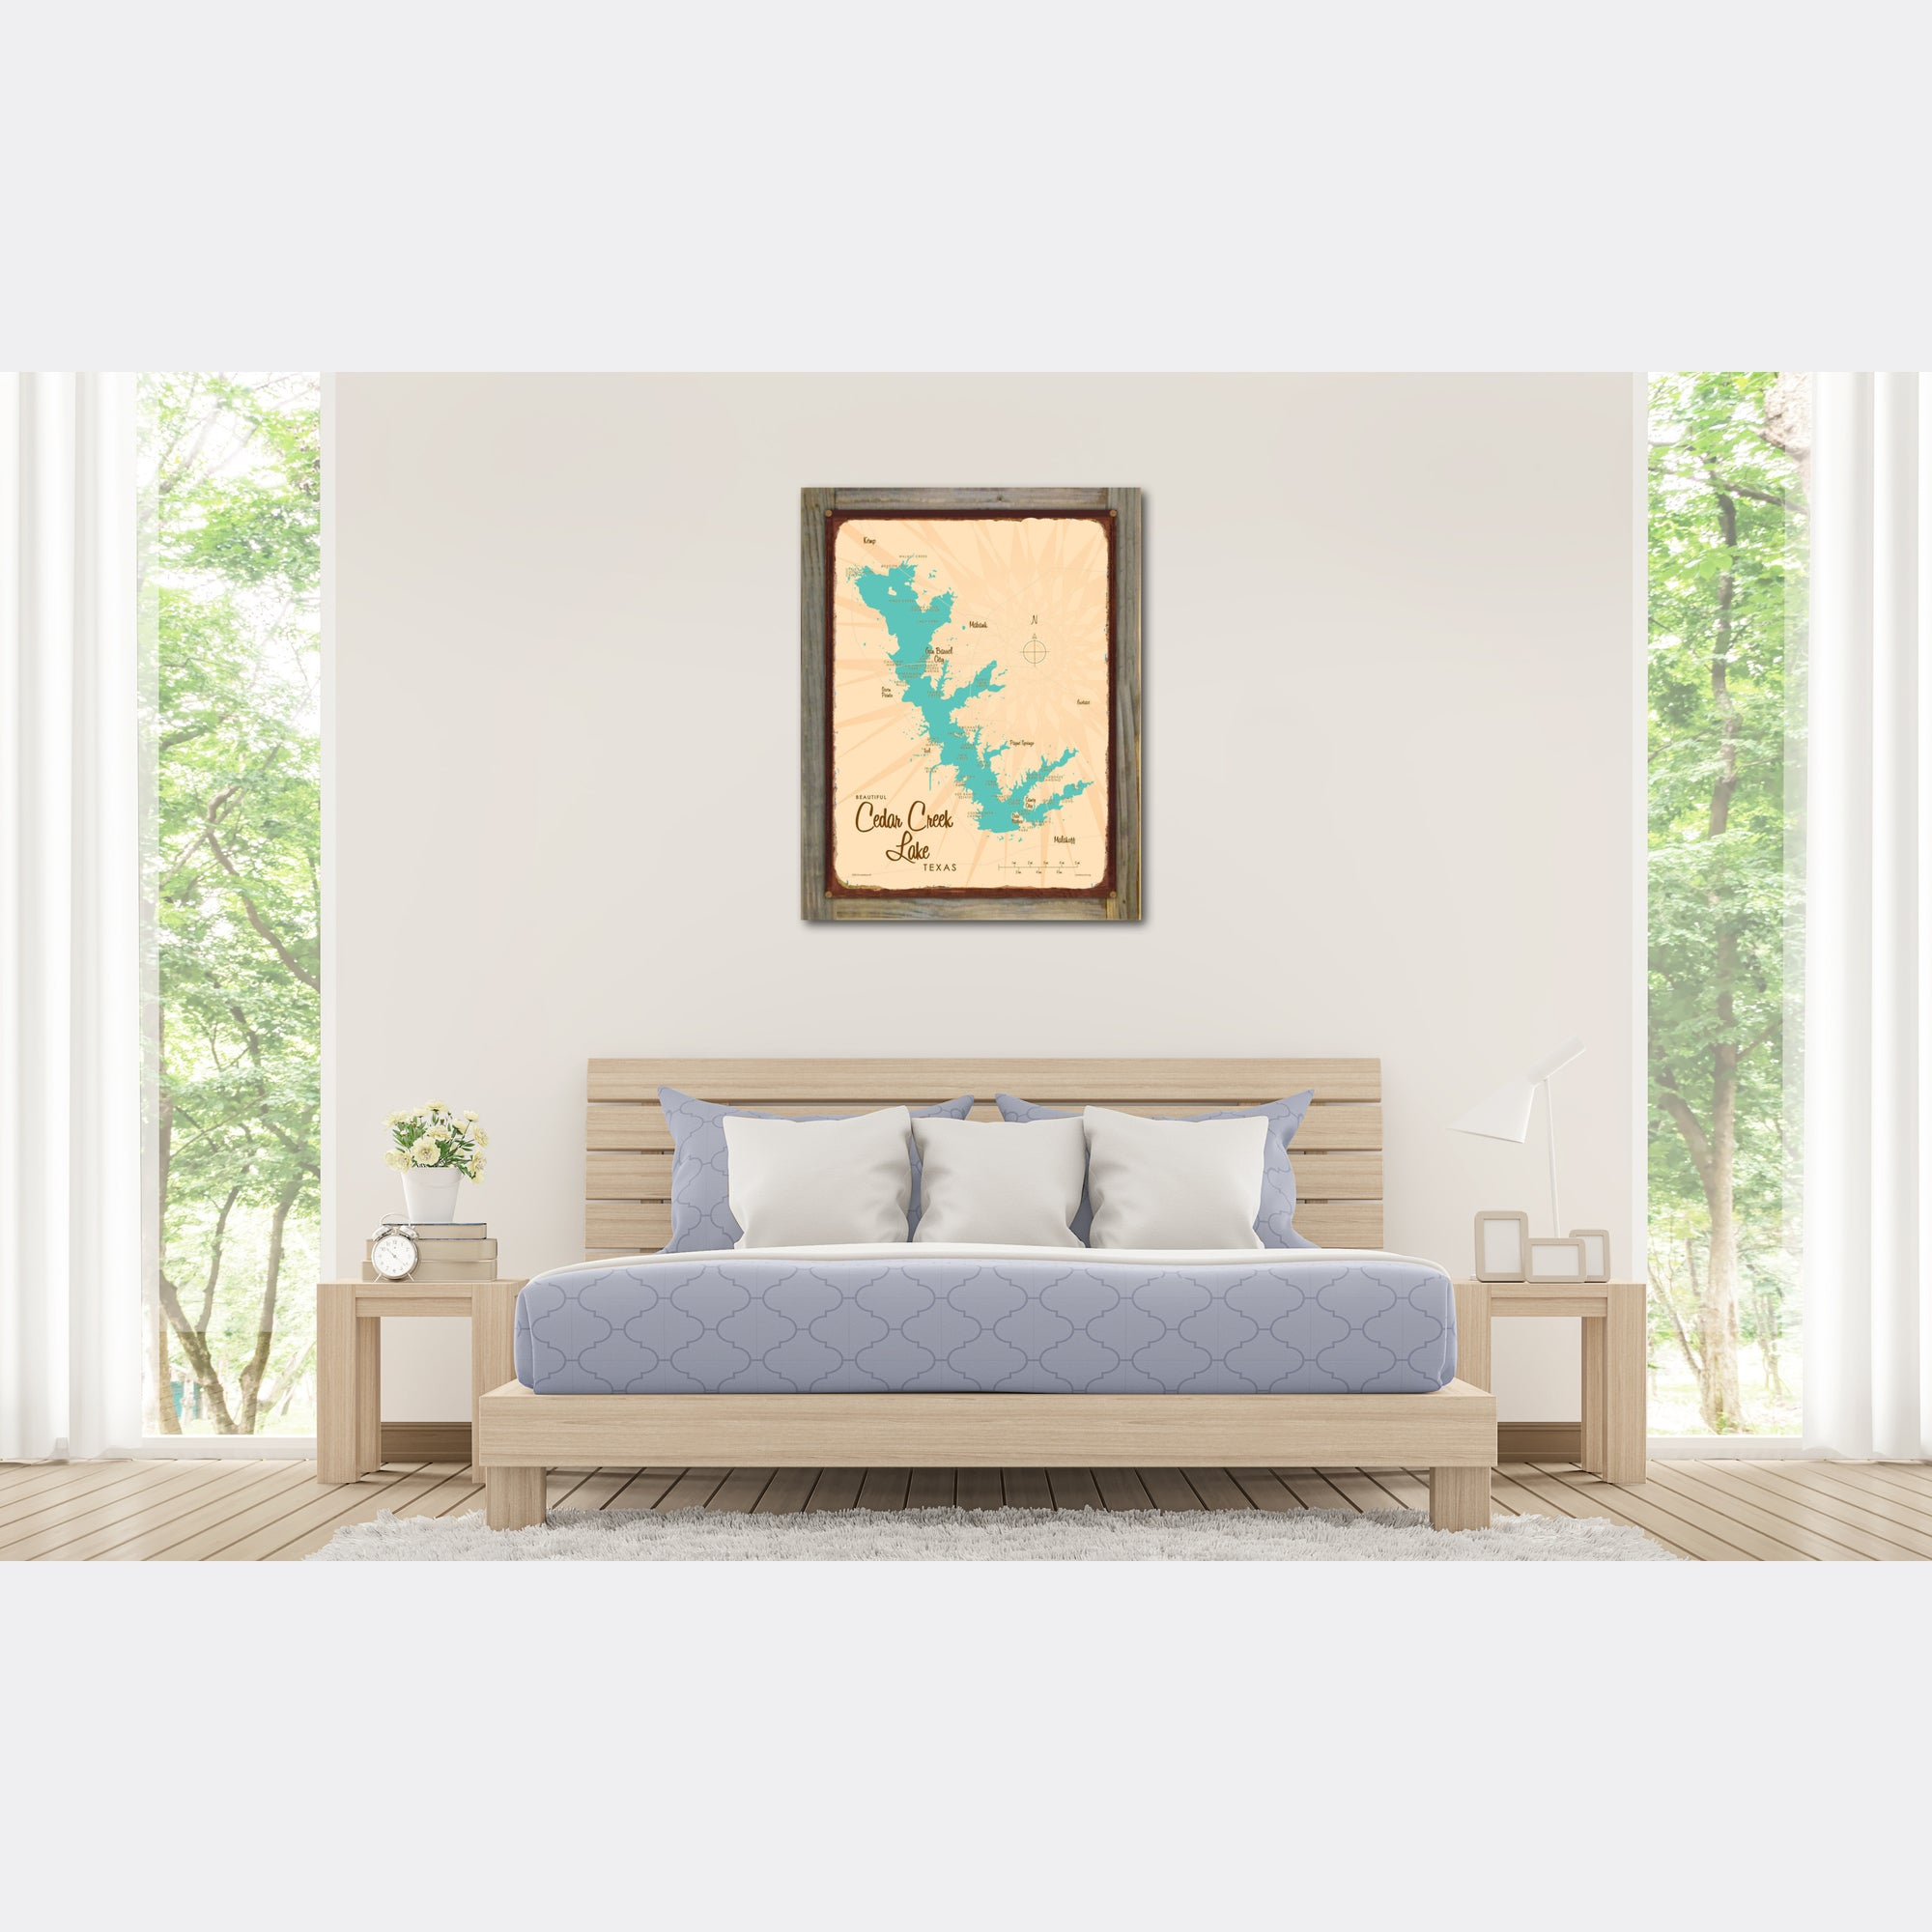 Cedar Creek Lake Texas, Wood-Mounted Rustic Metal Sign Map Art